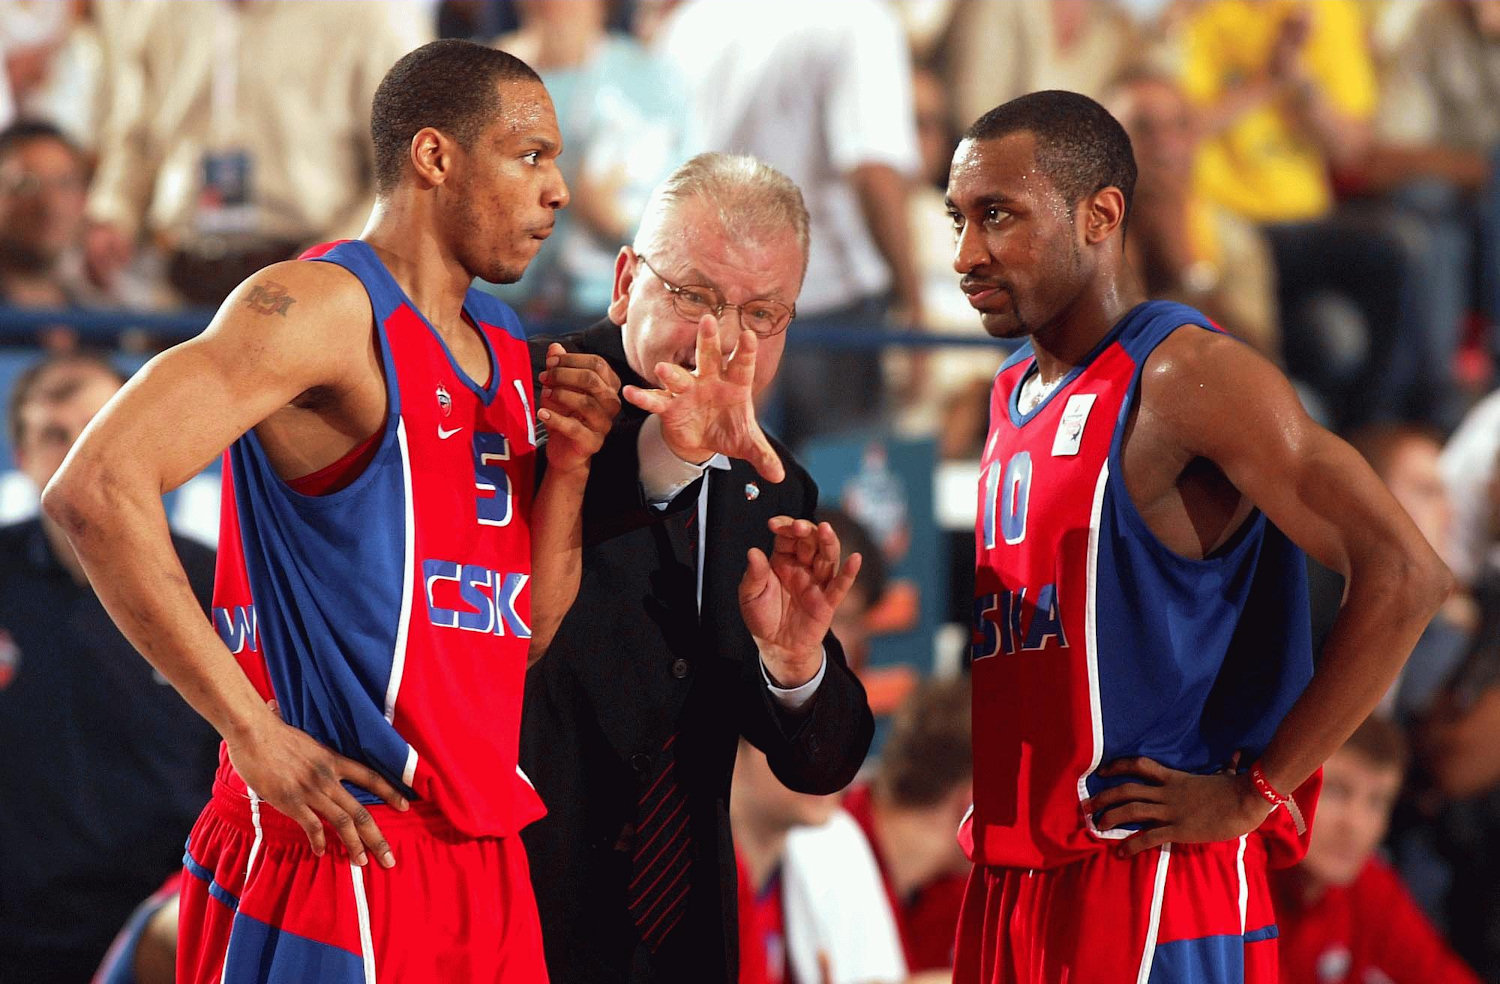 Marcus Brown with Ivkovic and Holden - CSKA Moscow - Final Four 2004 Tel Aviv